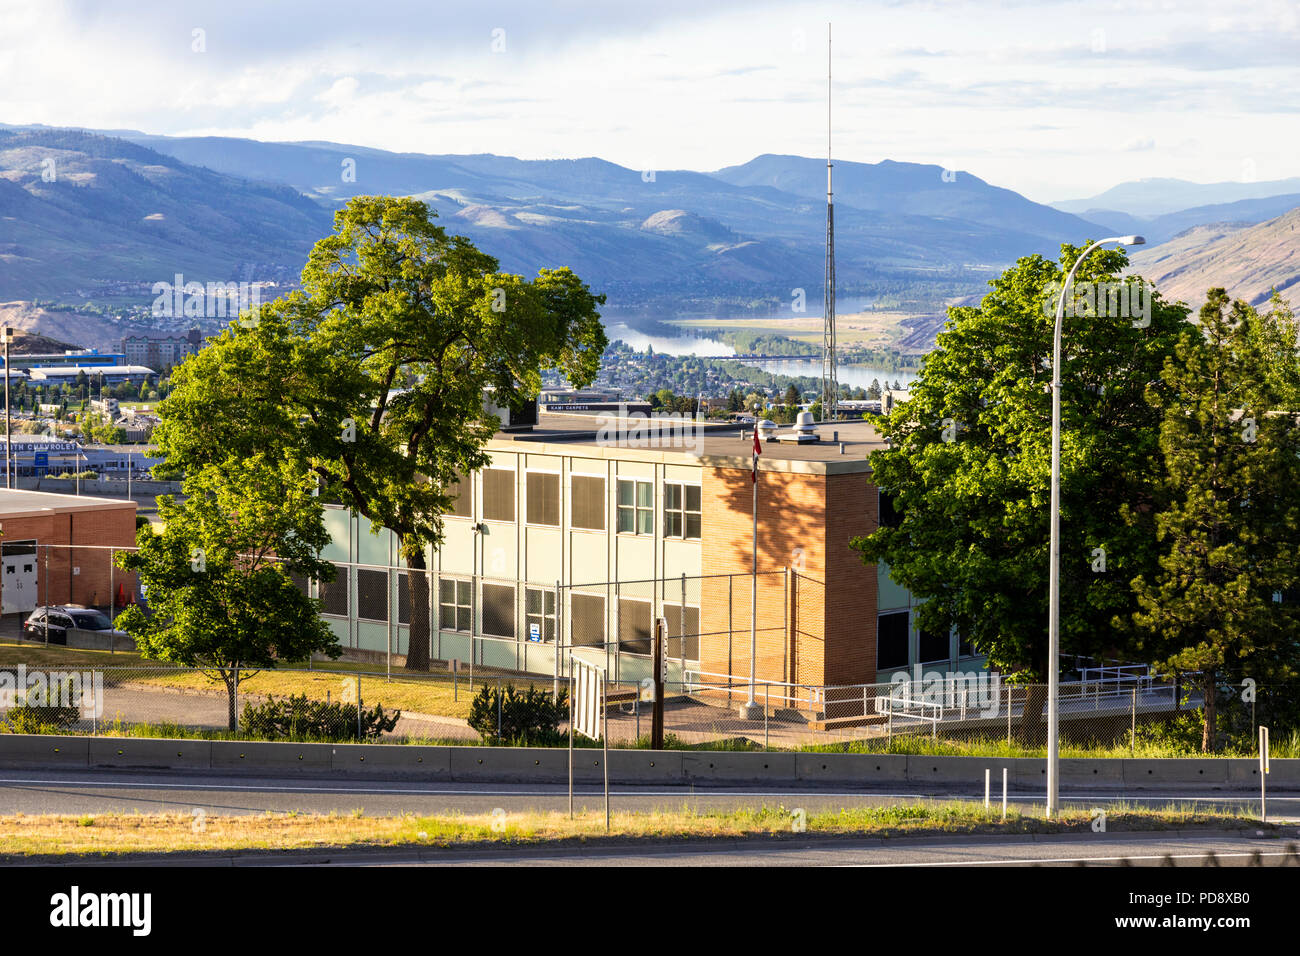 Evening light on the town of Kamloops, British Columbia, Canada - Stock Image